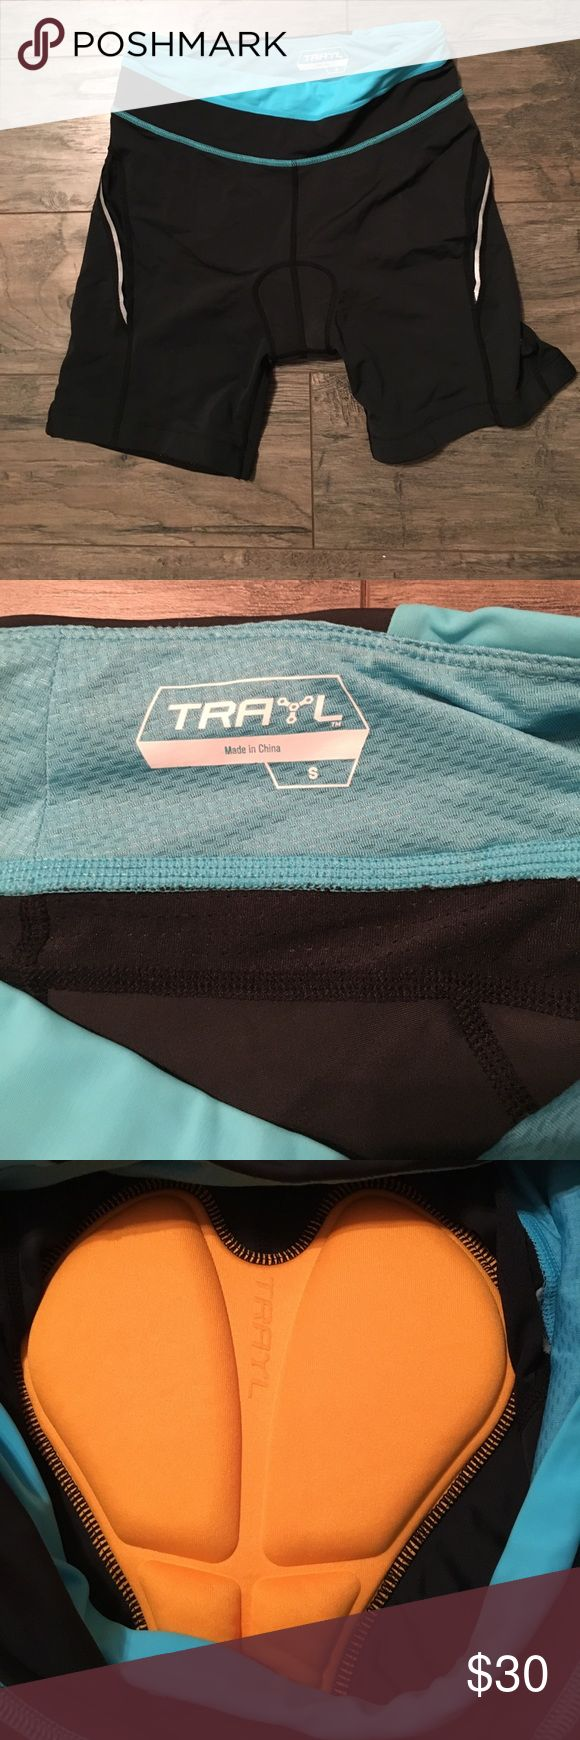 Trayl padded cycle shorts size small new w/o tags Trayl cycle shorts size small with comfort padding, non slip grip on thigh area, reflective stripes, and small zipper pocket in back. Never worn, new without tags! trayl Shorts